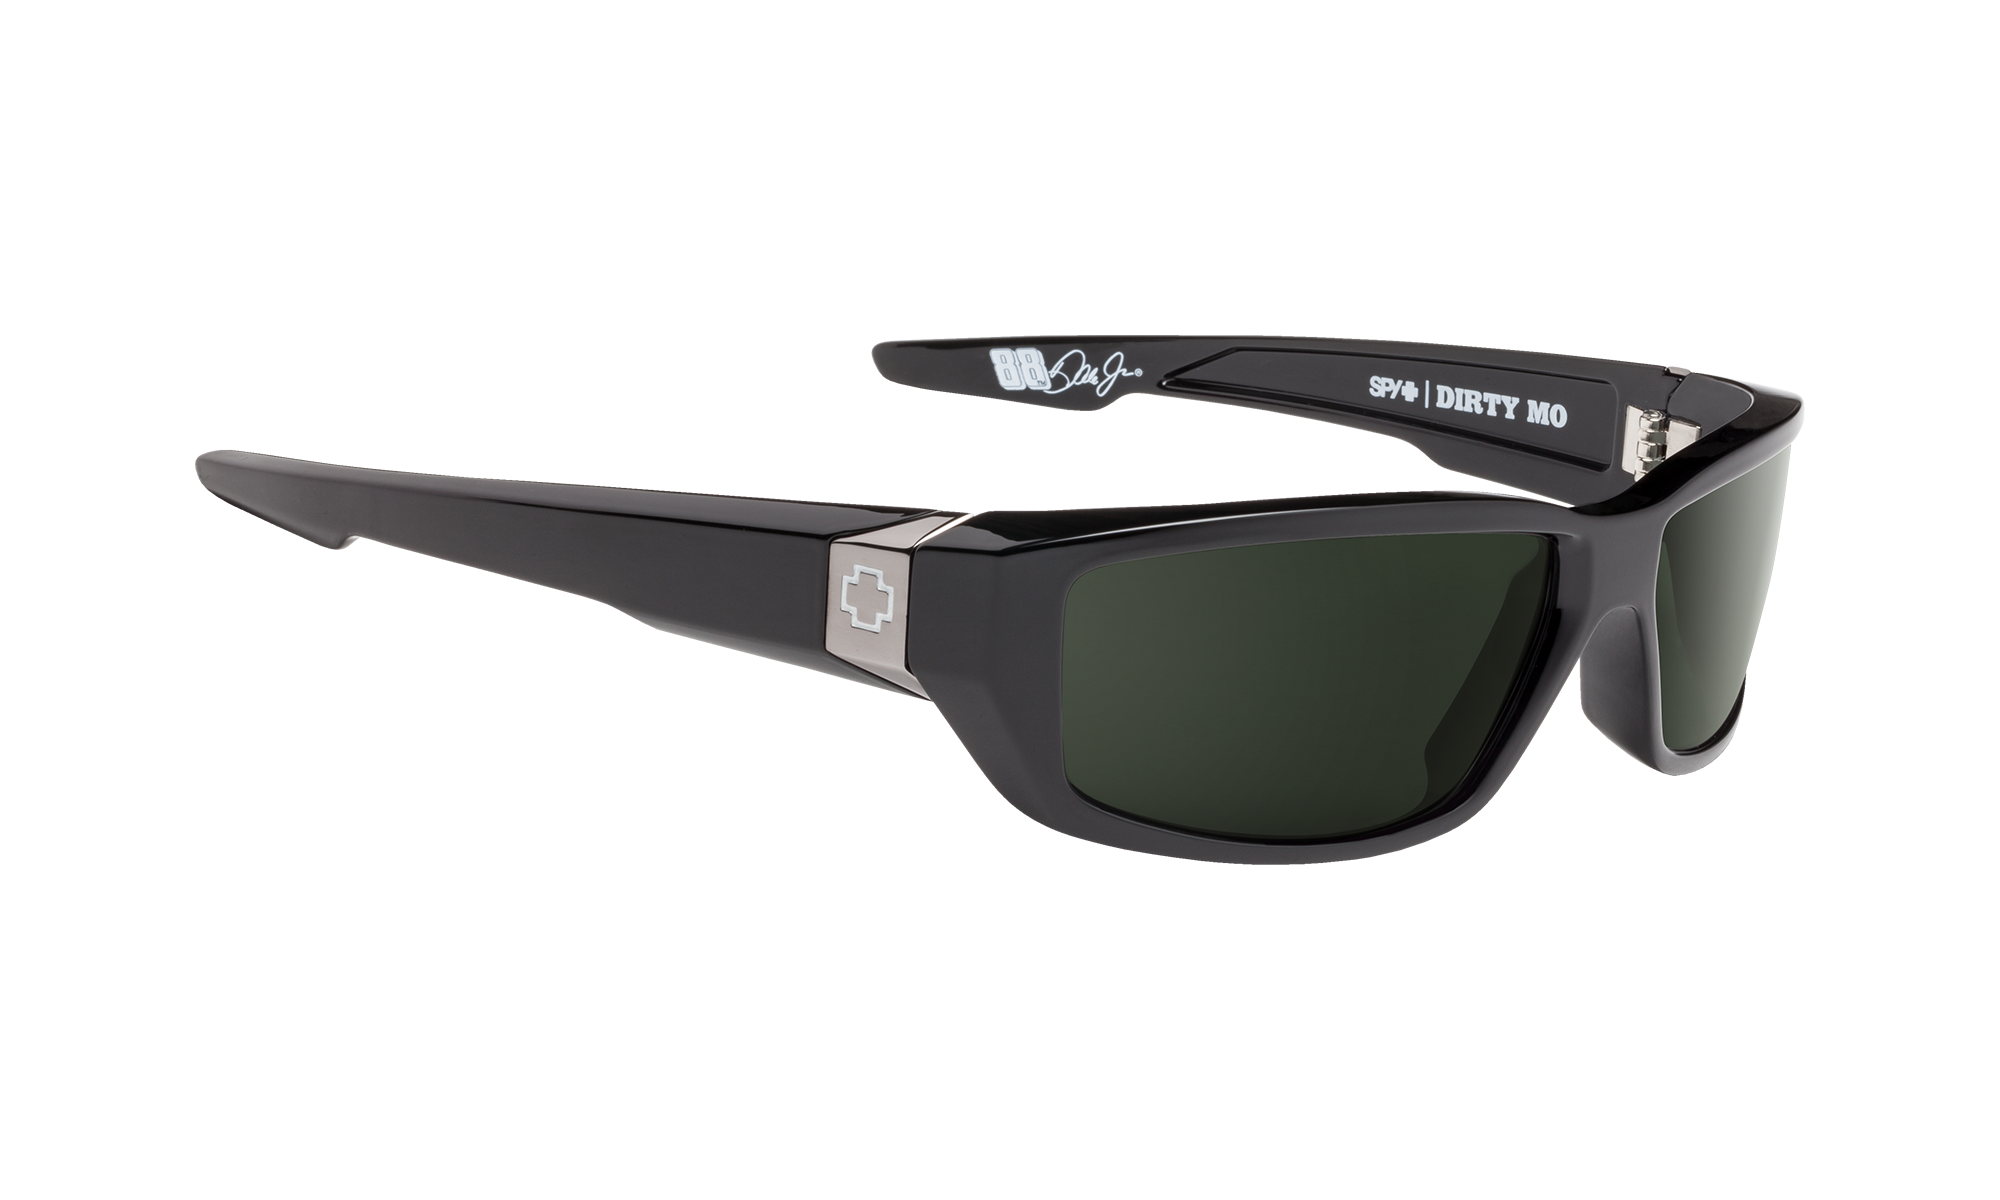 Optic Mo Optic SunglassesSpy Dirty Mo Dirty SunglassesSpy DH92EI